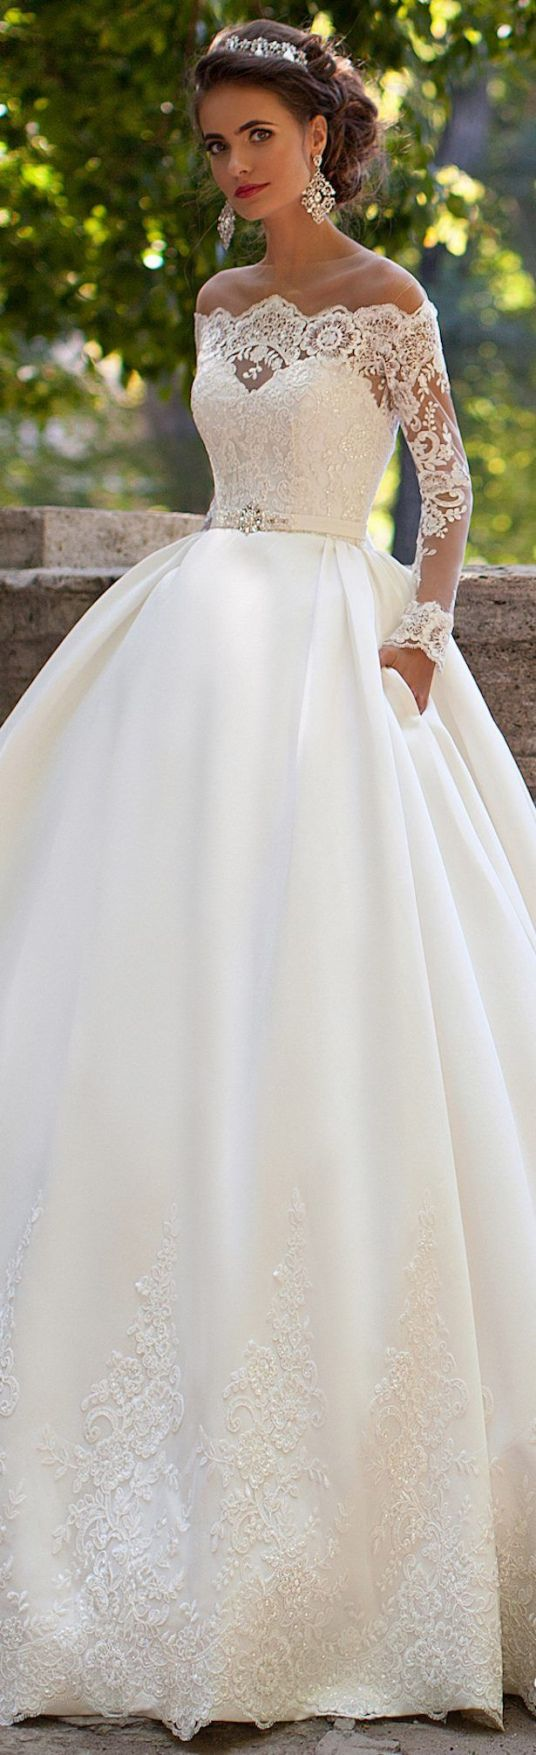 Wedding dress for pear shaped   the Best Wedding Dresses  Best Wedding Dress for Pear Shaped